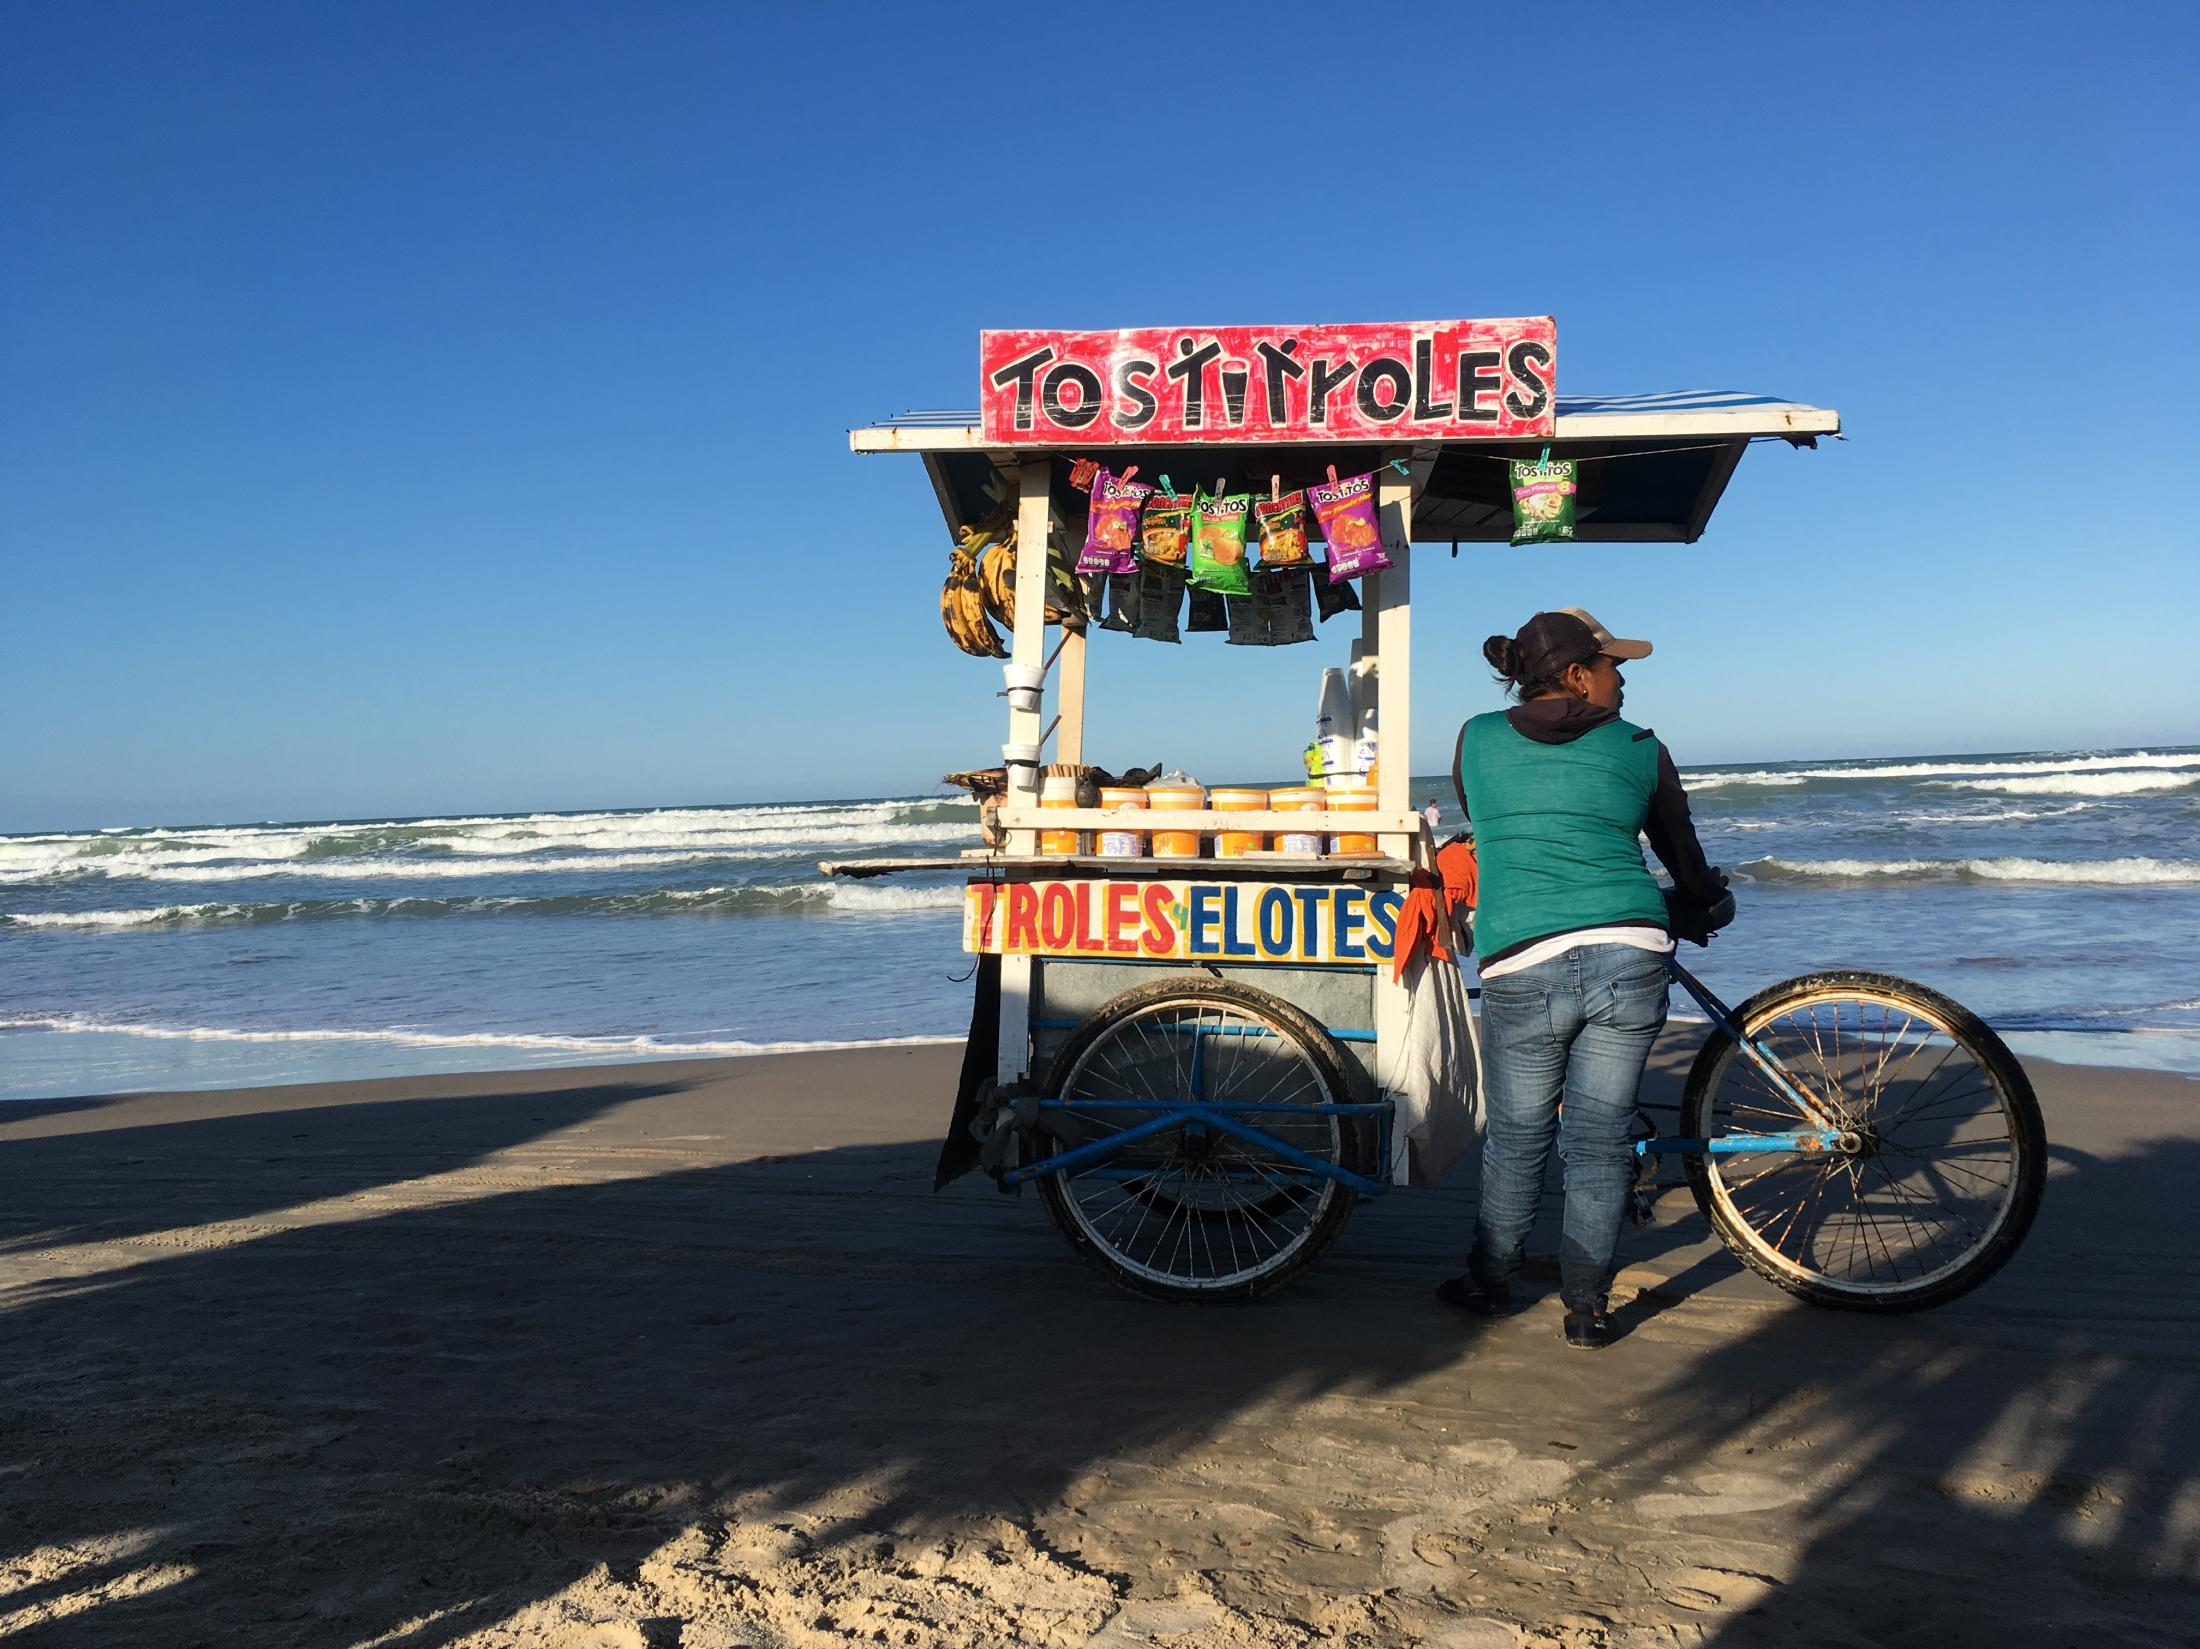 Playa Miramar, Tamaulipas, México. 2017. A lady waits for hungry customers to sell snacks to at the beach. I was there to hang out with friends while we chatted about our lives and listened to the popular reggaetón songs of that moment in time. Reggaetón: is a style of music which originated in Puerto Rico during the late 1990s. It is very popular in Latin American countries including México.